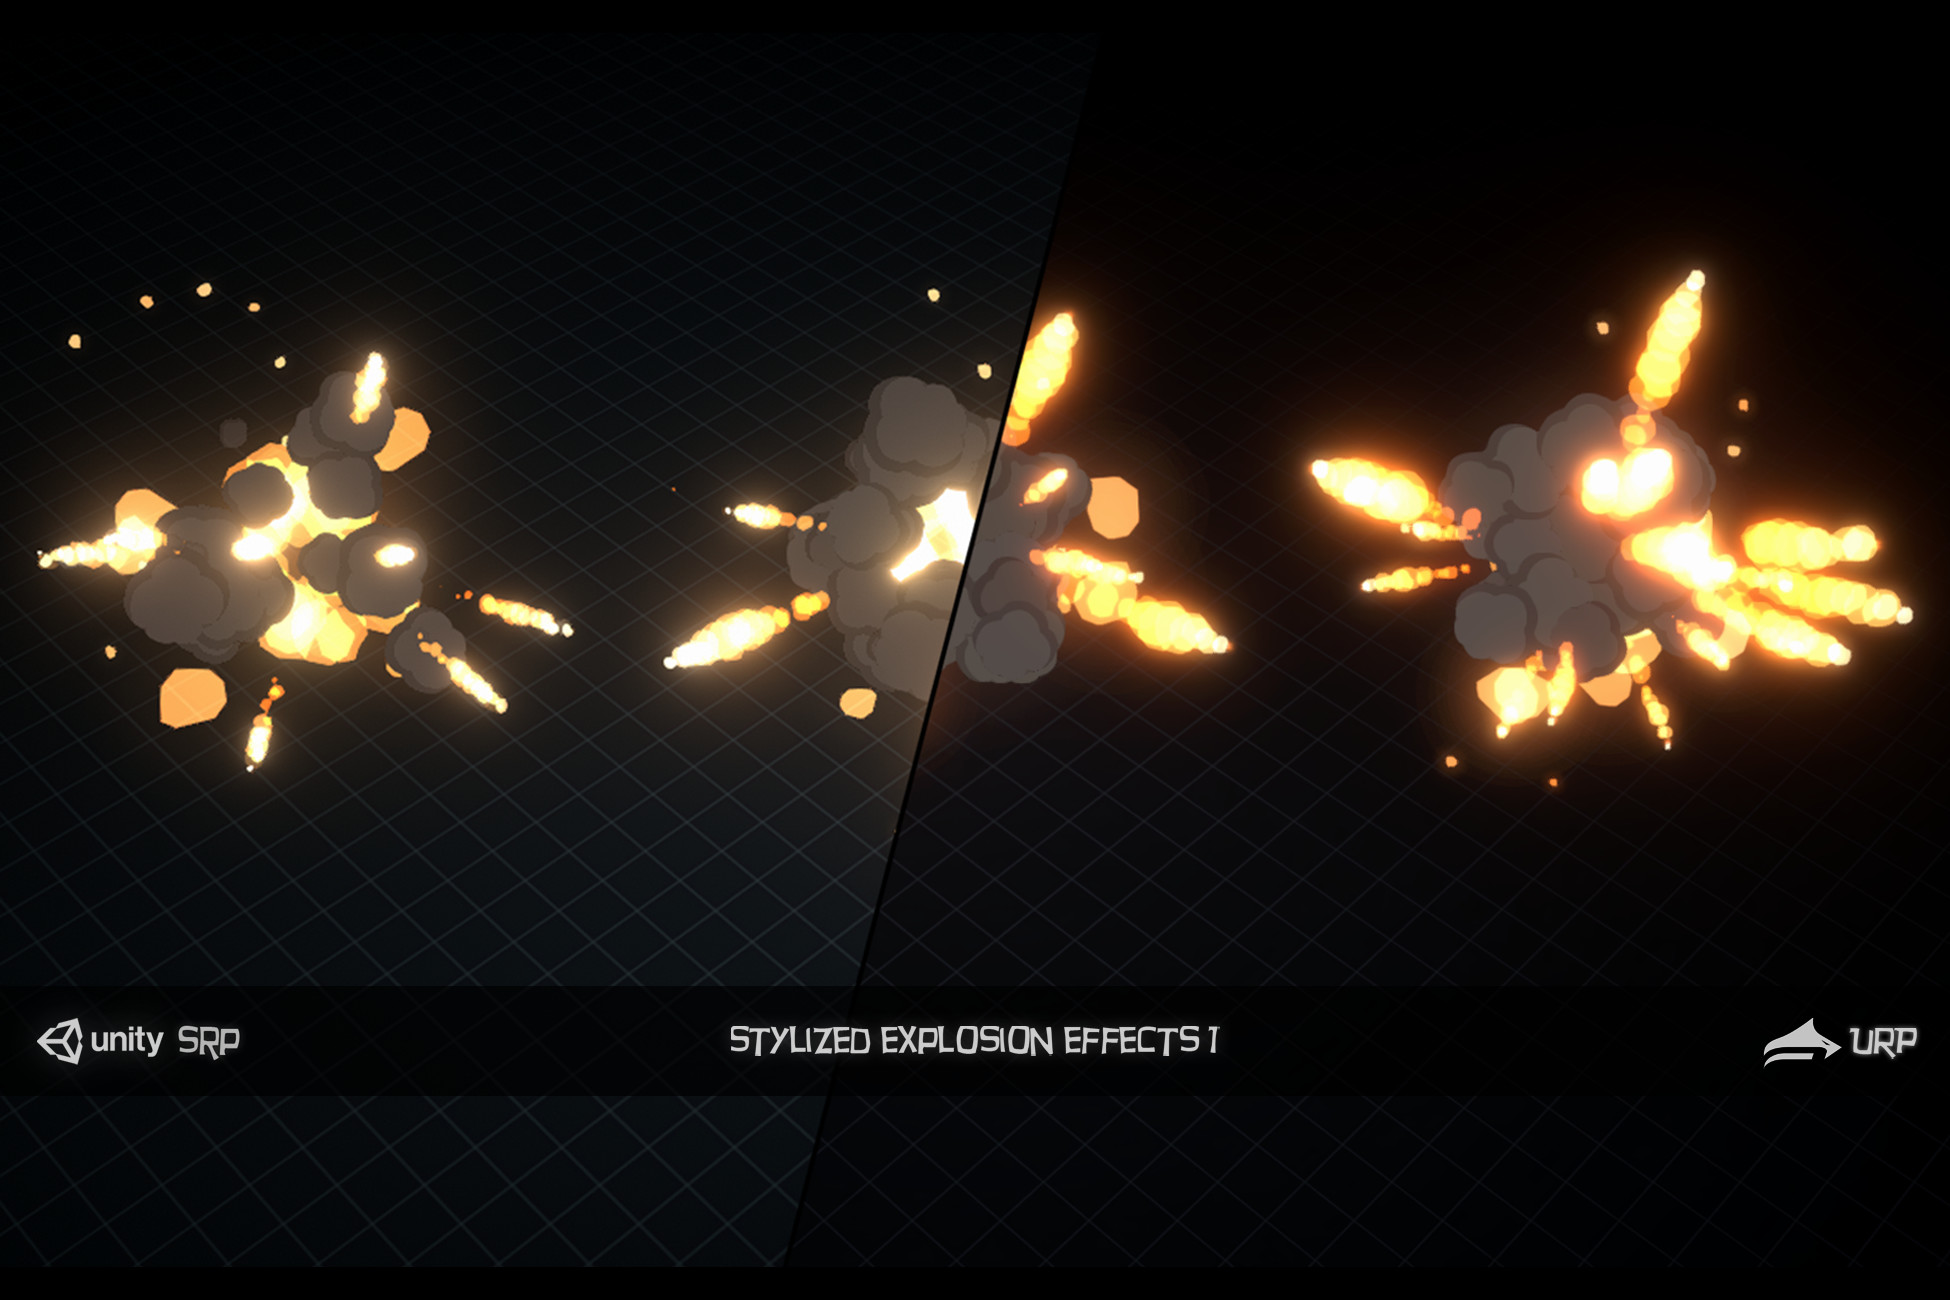 Stylized Explosion Effects 1